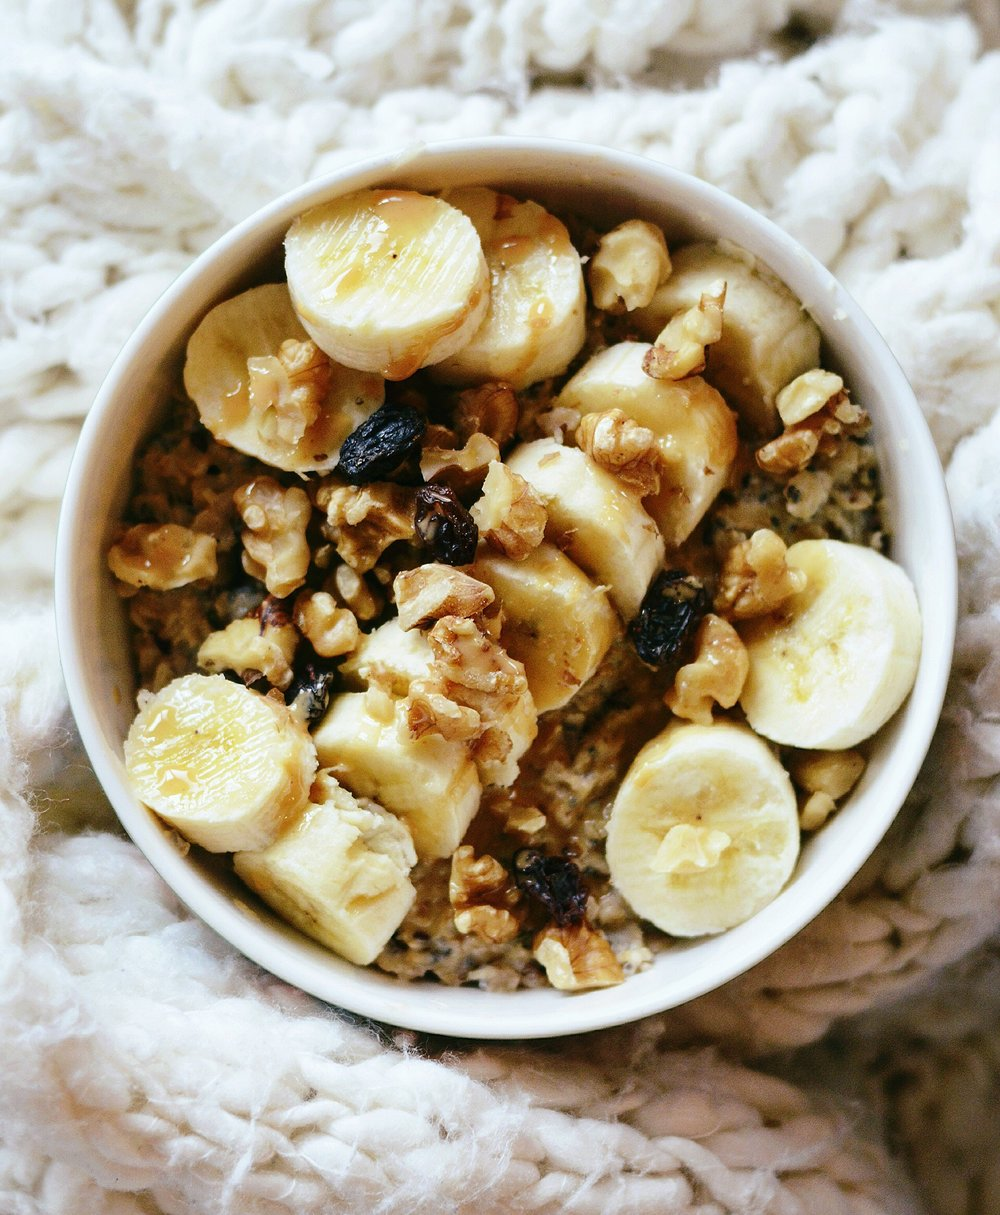 HEALTHY BREAKFAST // oatmeal with bananas, raisins, and walnuts.